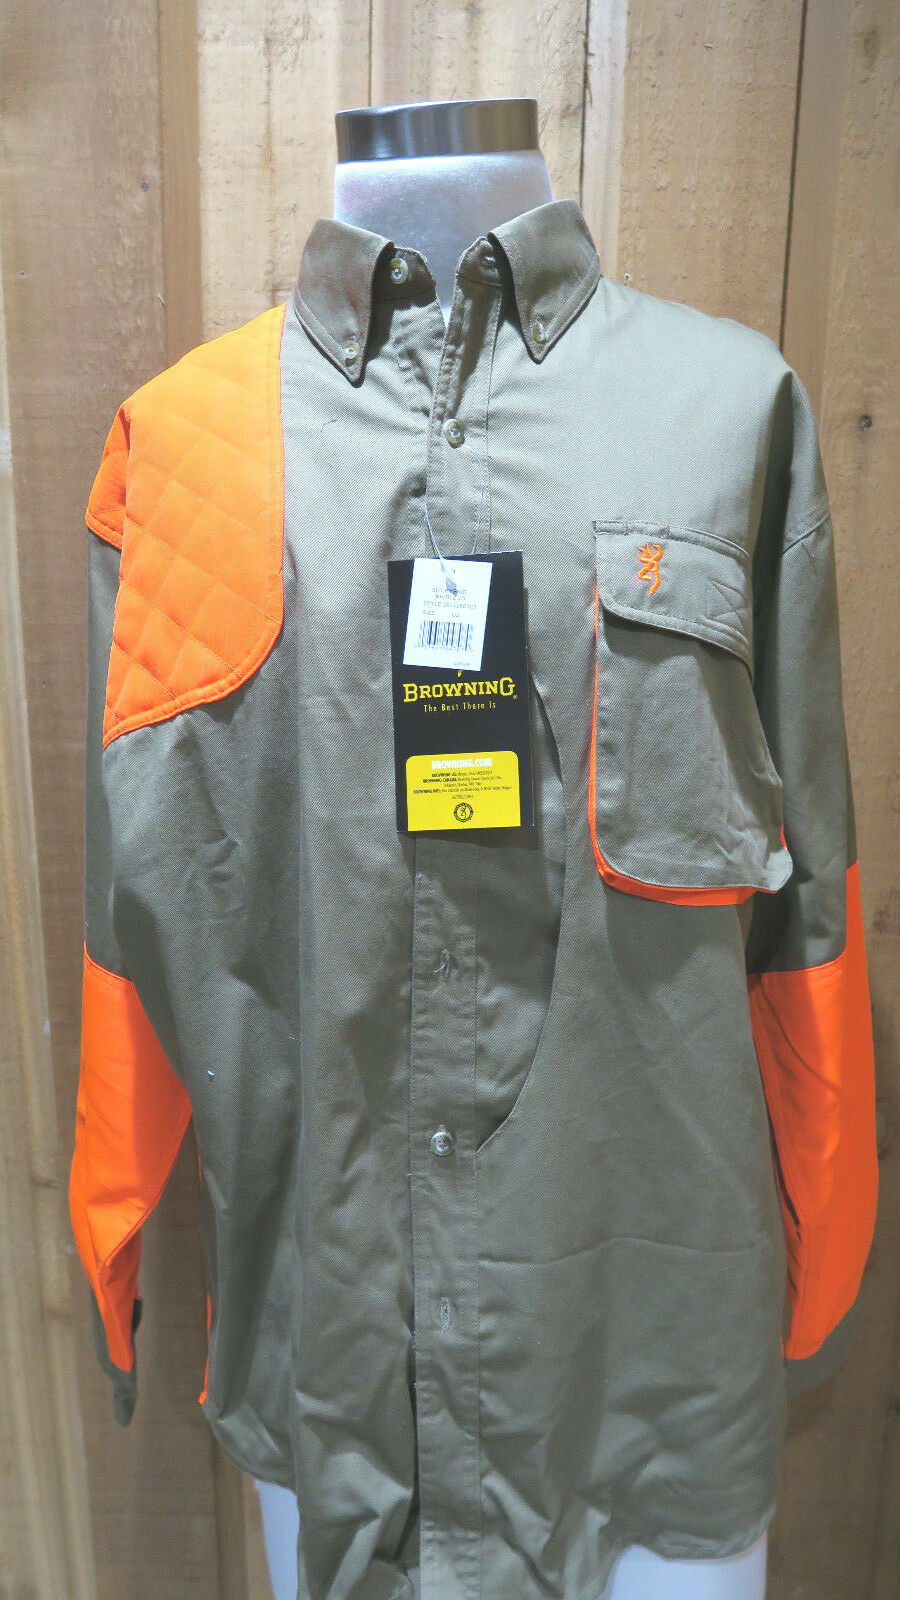 NWT Browning Hunting Shooting Quilted Shoulder Game Bag Shirt - Mens large